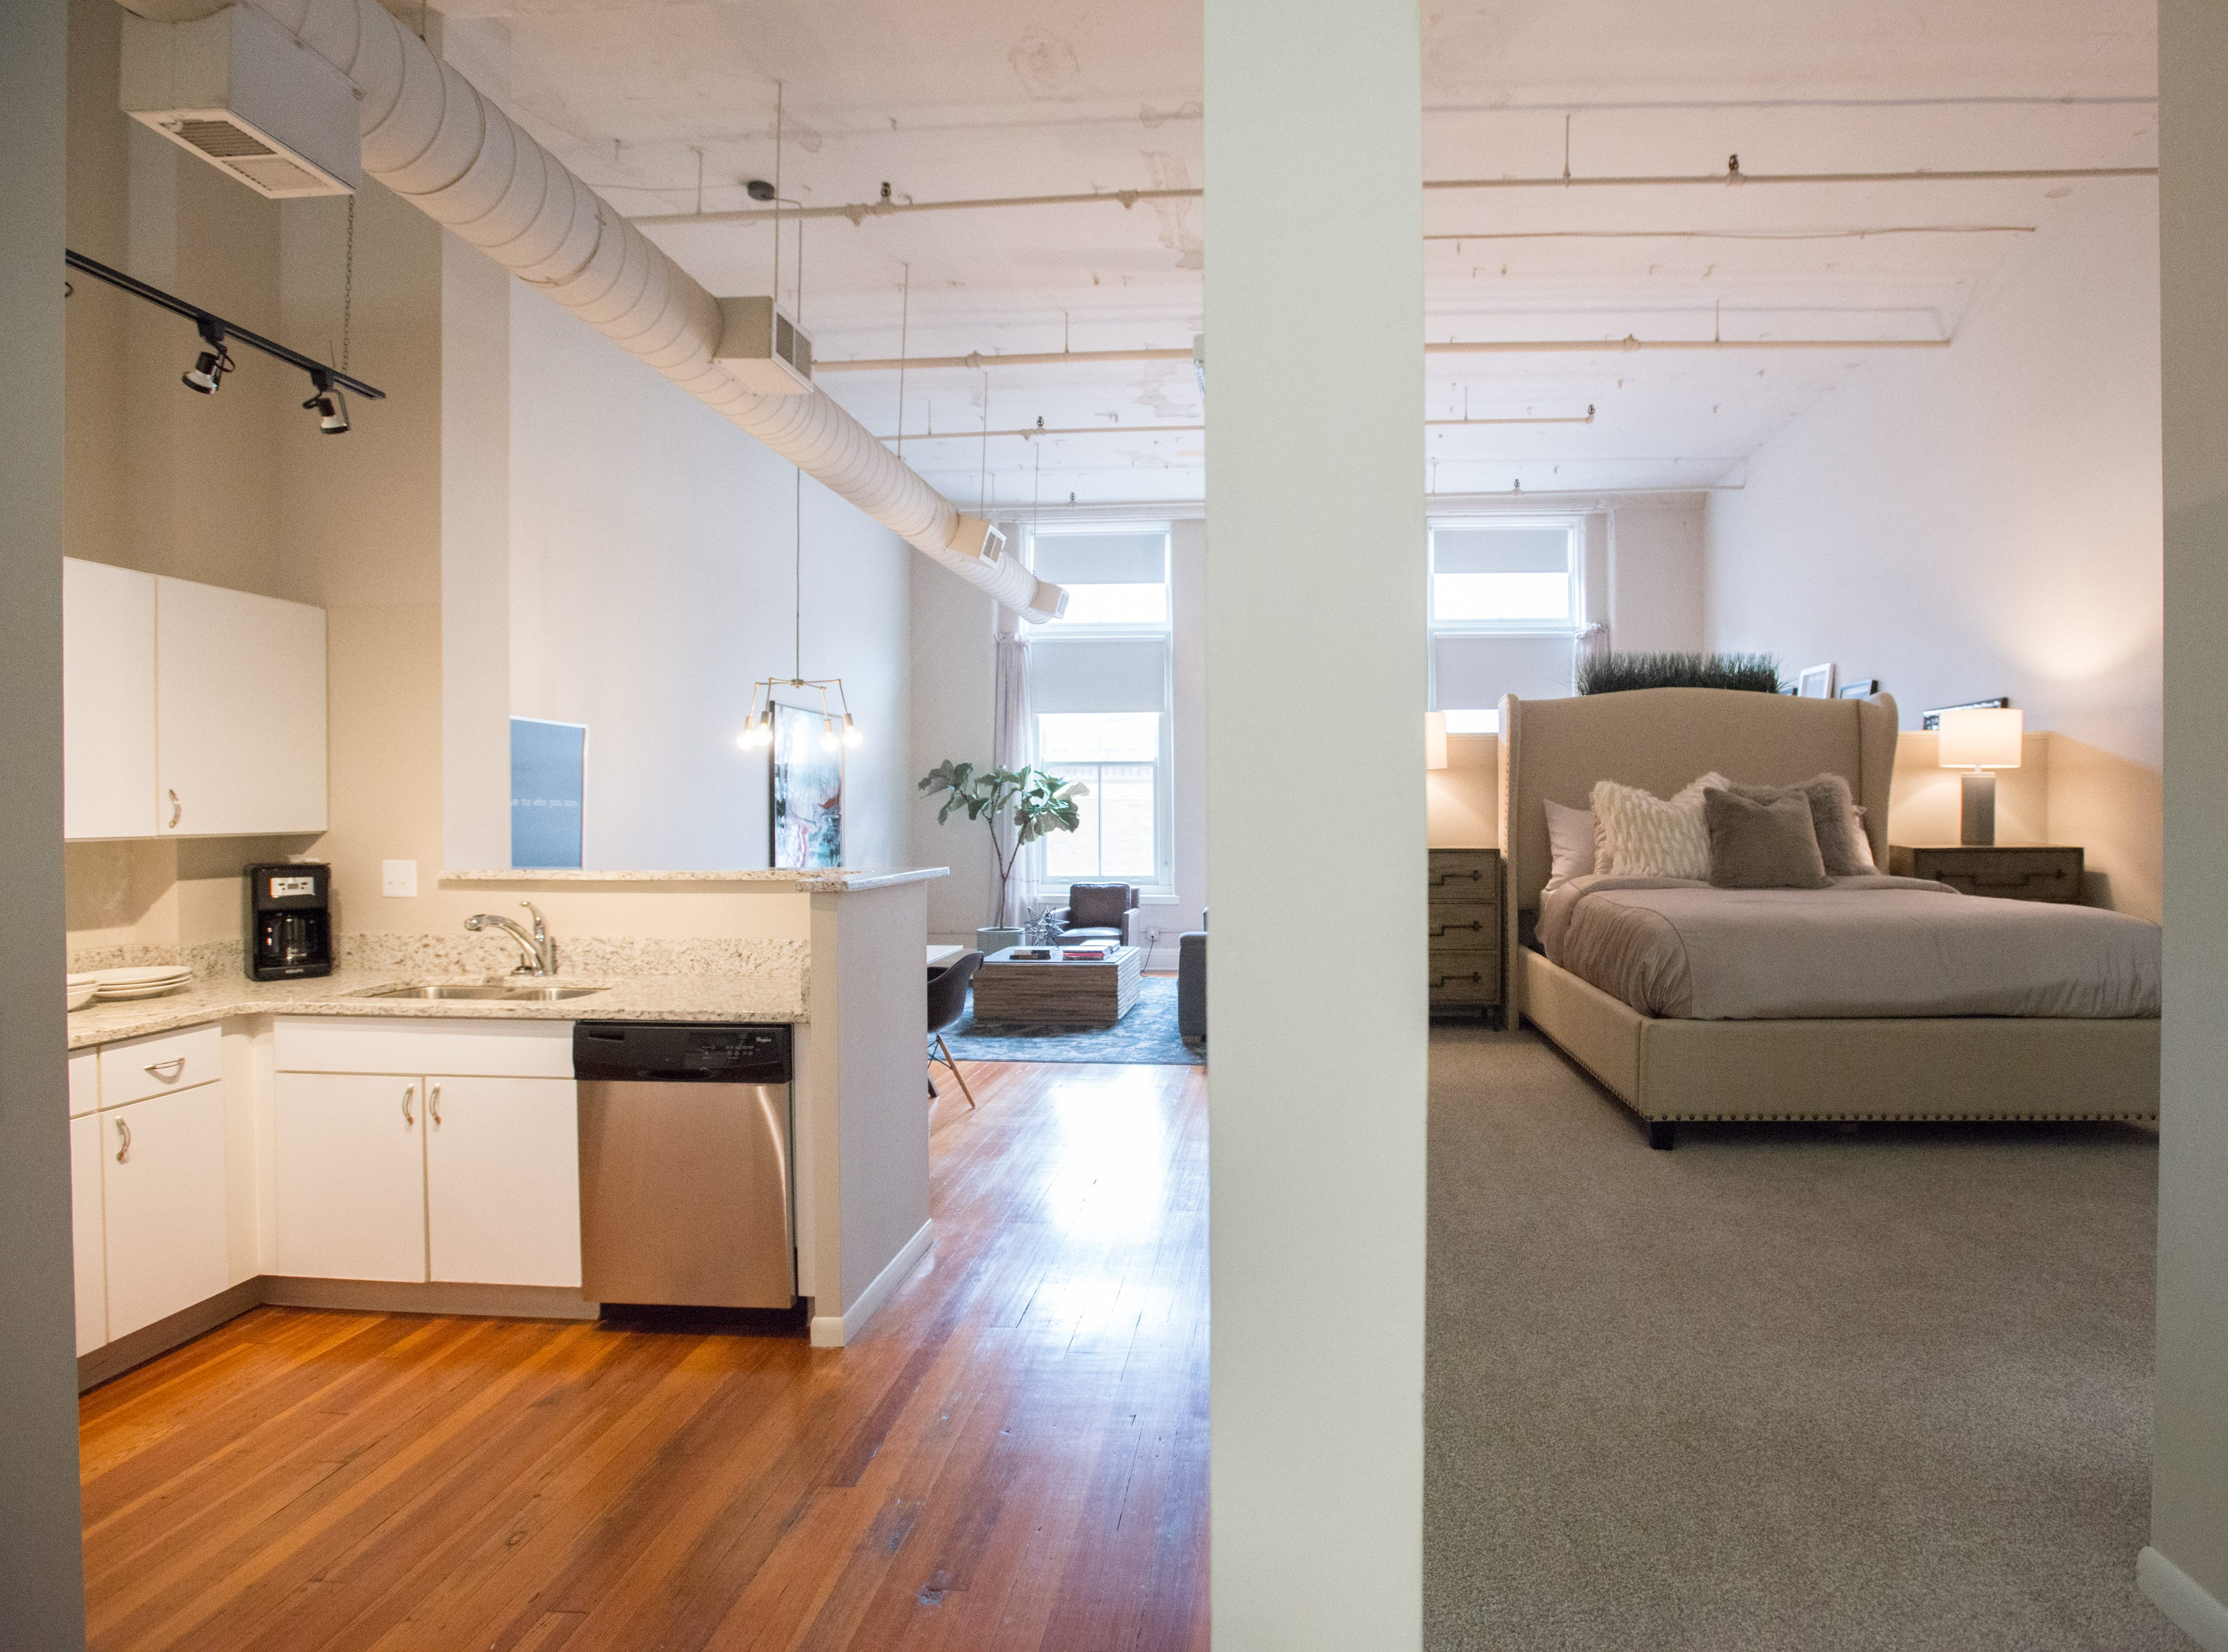 The Downtown Tour of Living features a self-guided tour of 15 apartments and condos in the Central Business District.